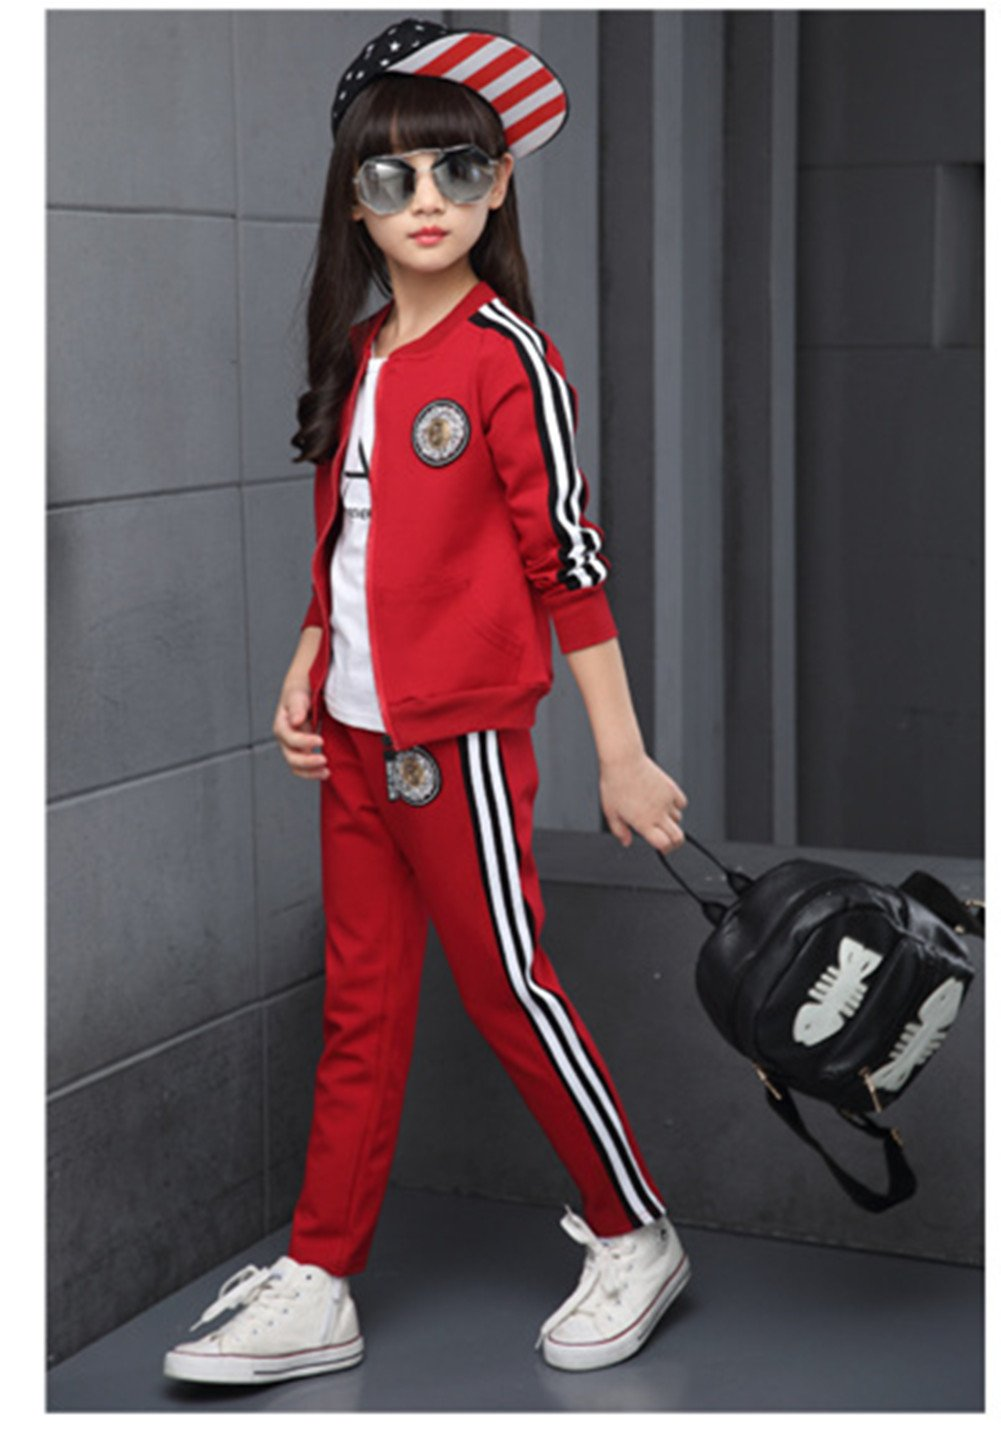 FTSUCQ Girls Zip Front Sports Tracksuits Striped Shirt Jacket Coat + Pants,Red 140 by FTSUCQ (Image #4)